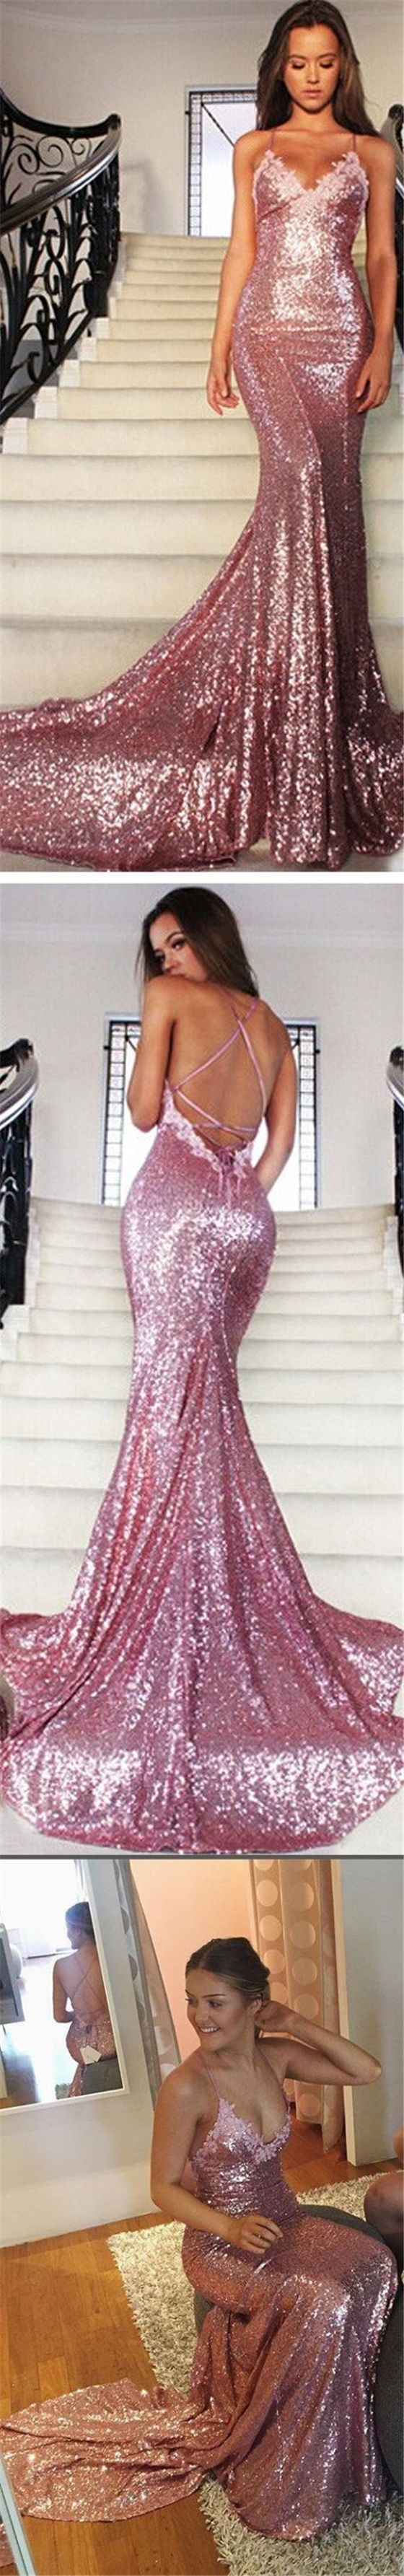 Sexy pink sequin mermaid prom dresses spaghetti backless prom